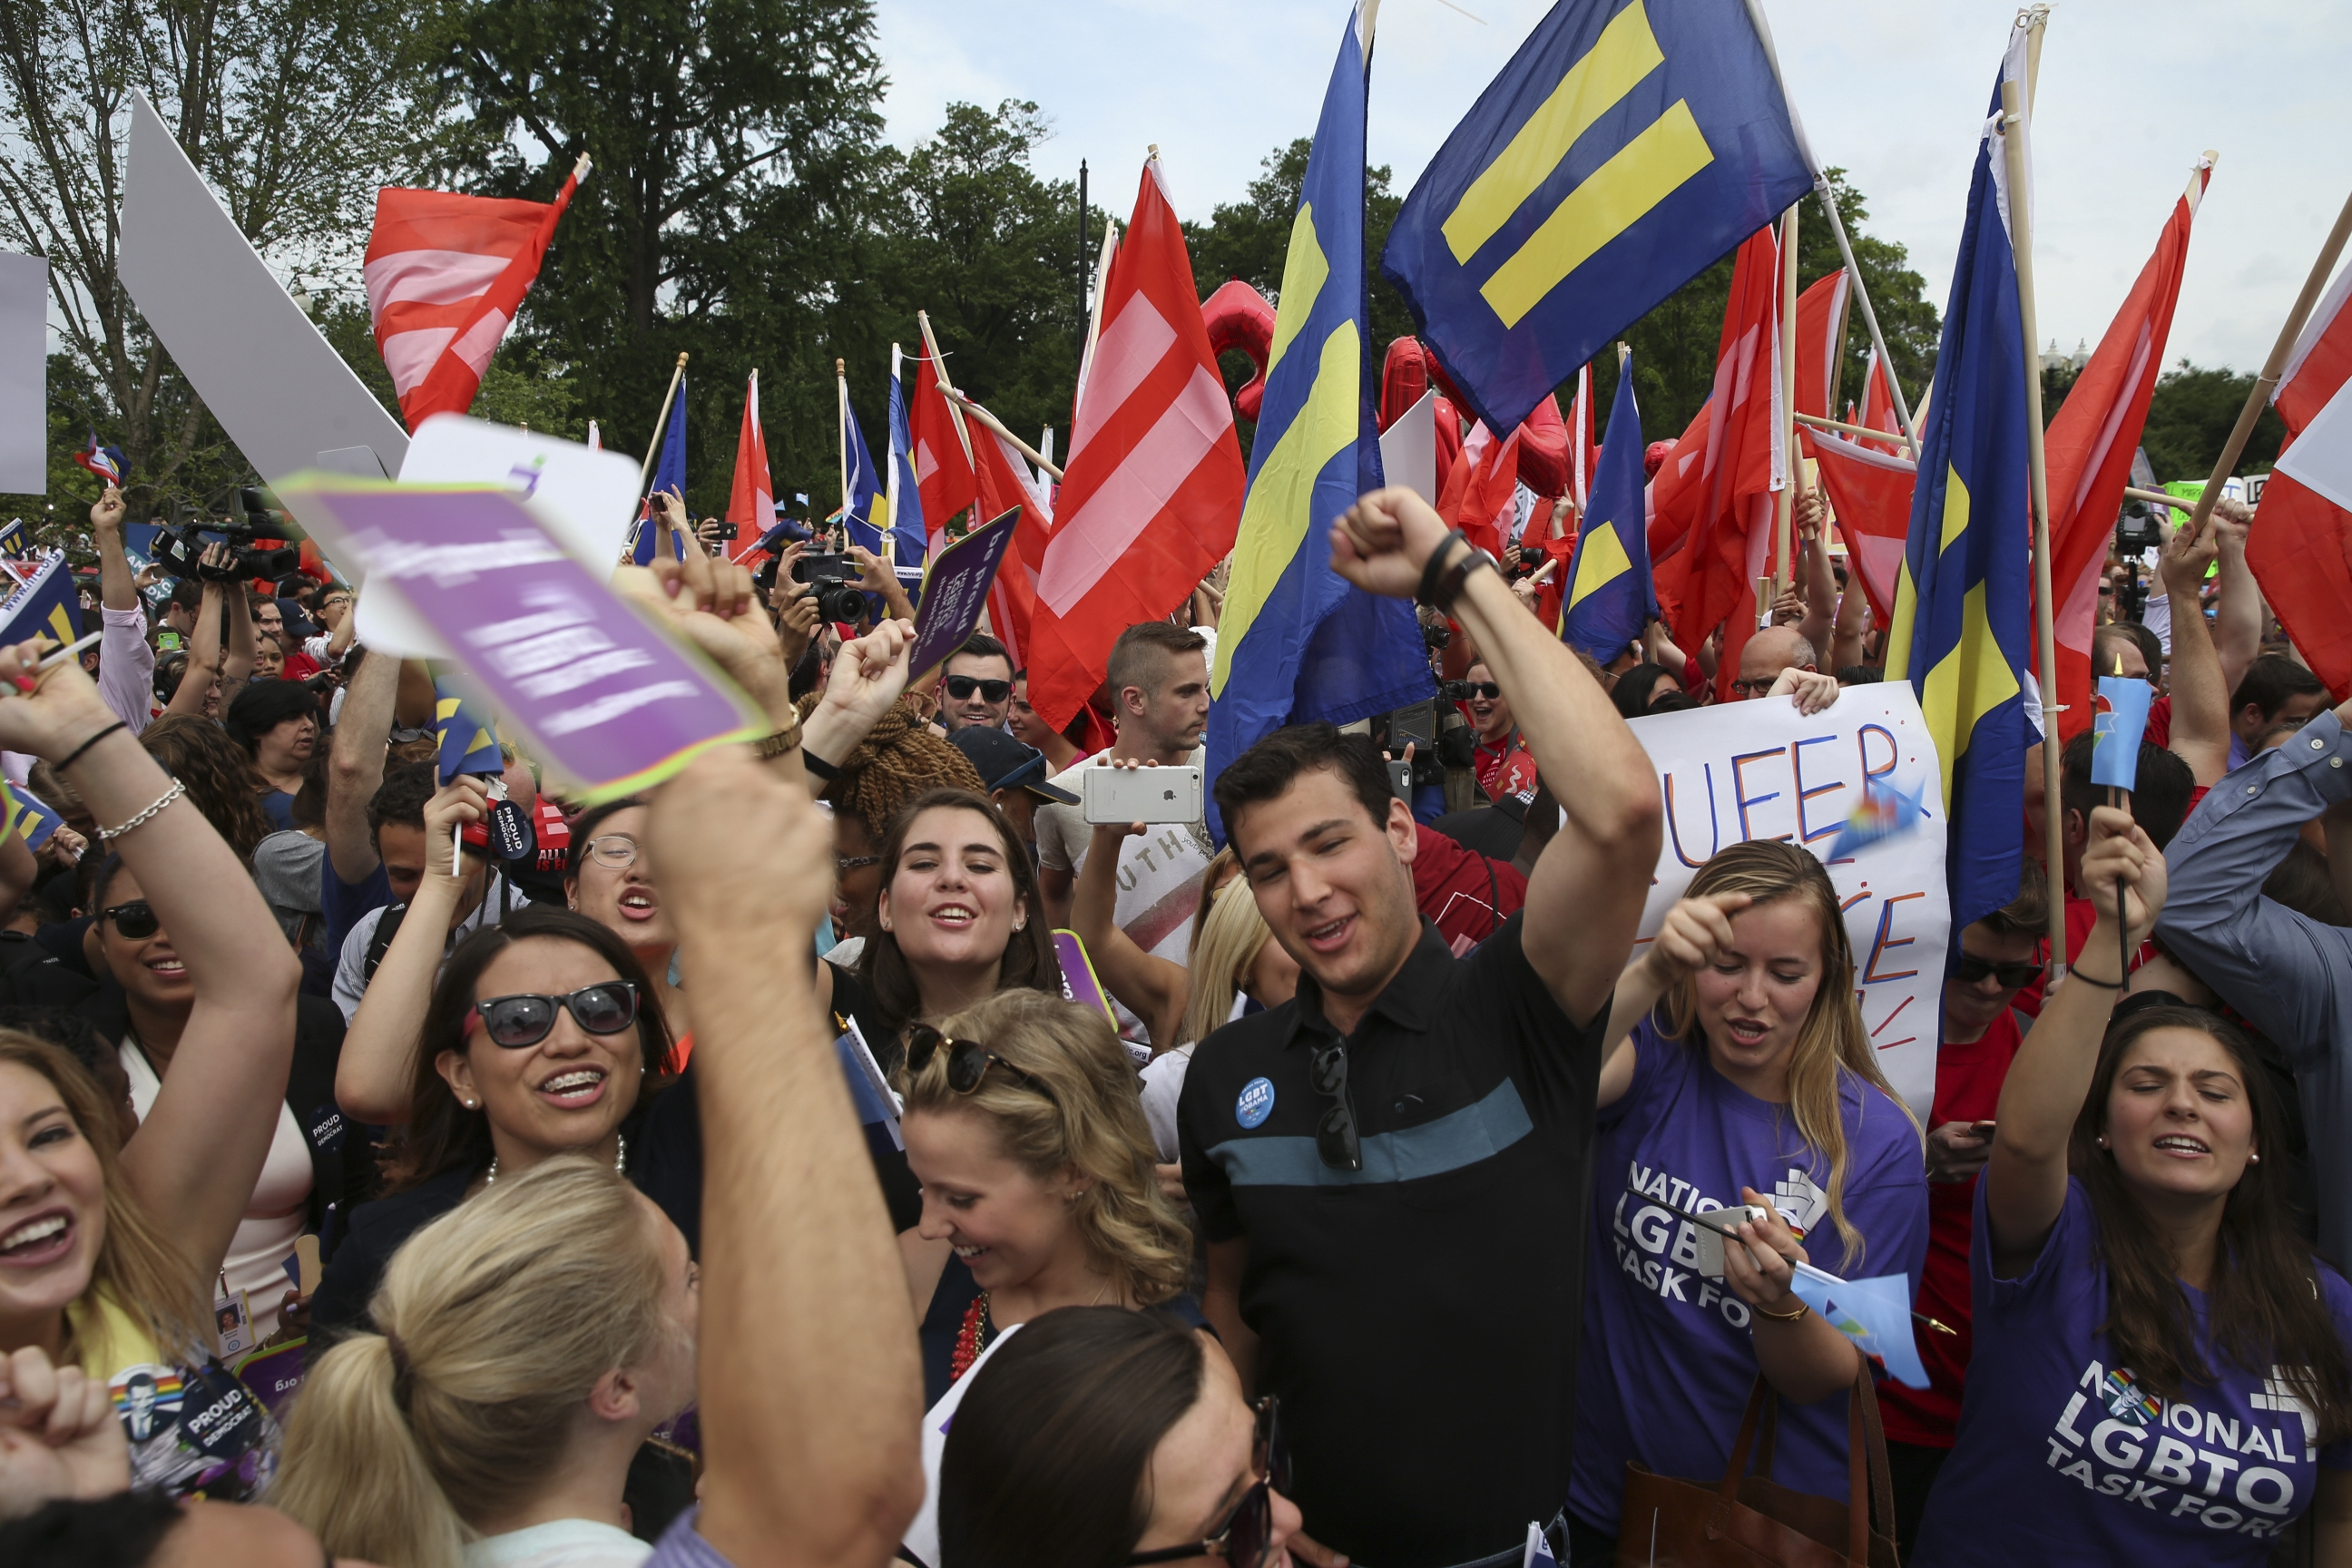 People celebrate outside the U.S. Supreme Court following the announcement of the ruling on the same-sex marriage case, in Washington, June 26, 2015. (New York Times)